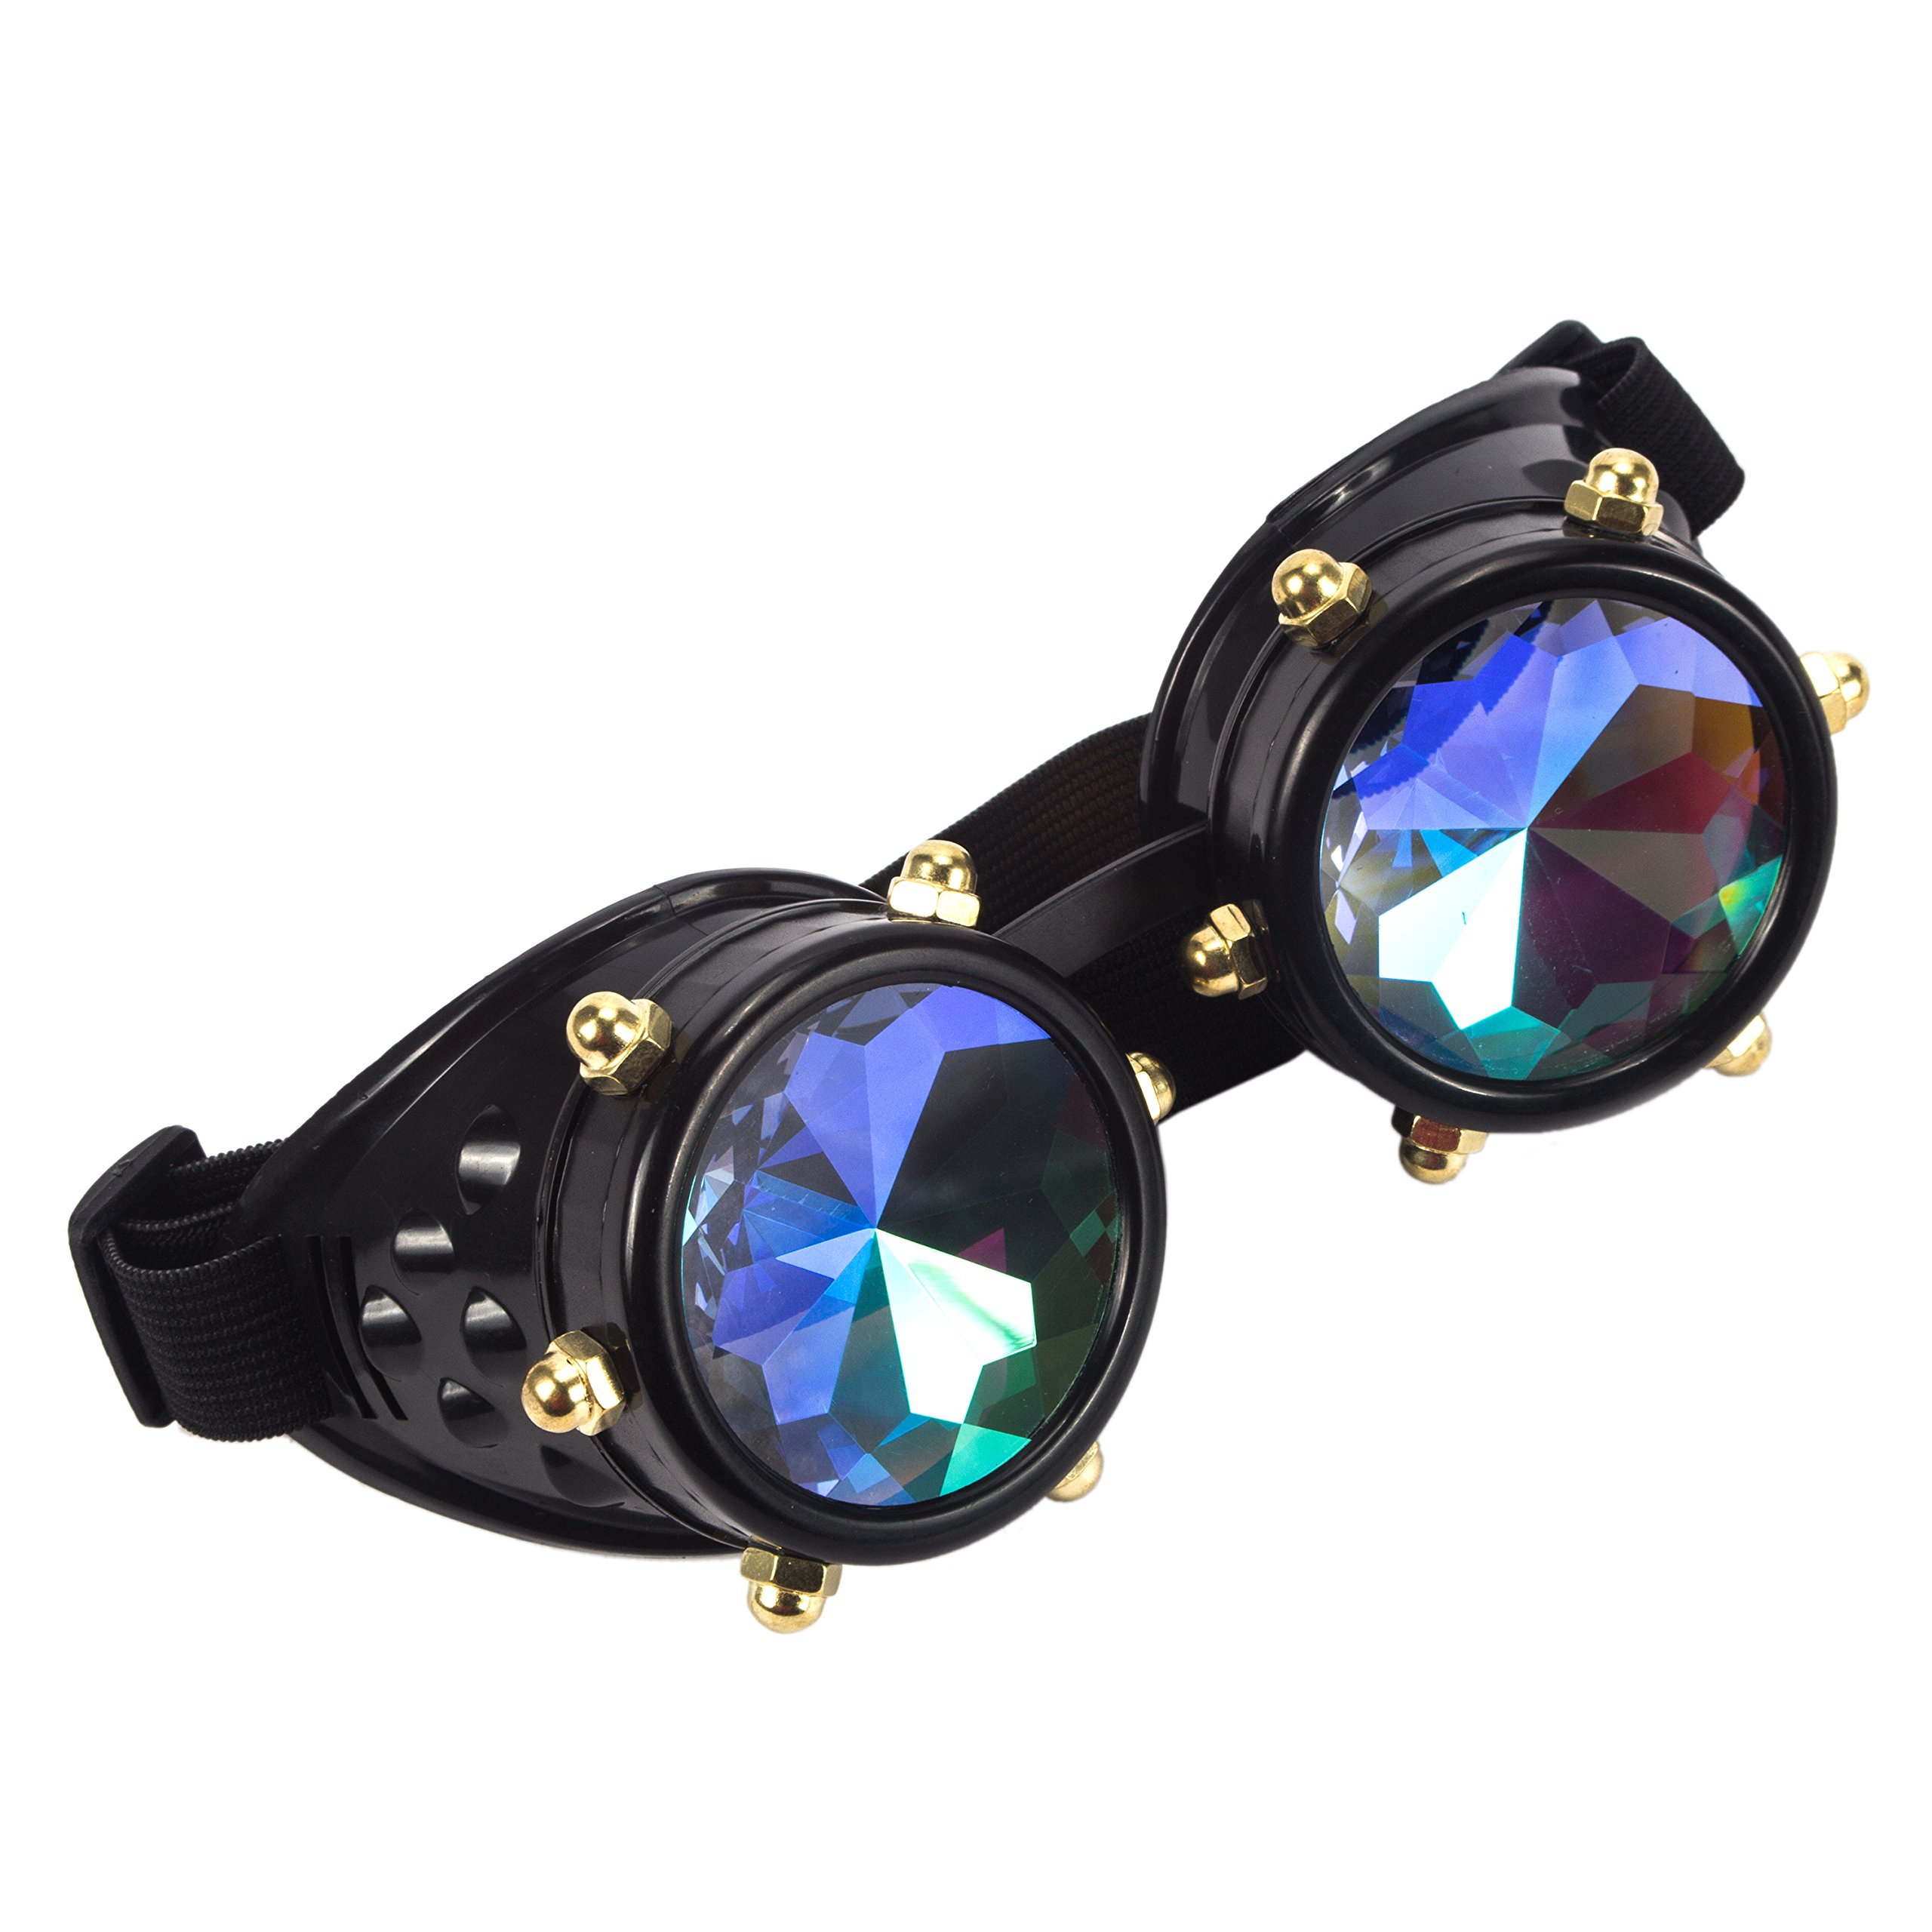 Amazon, Kaleidoscope Rave Goggles Steampunk Glasses with Rainbow Crystal Glass Lens (One Size-Adjustable head band, Black-New Style)